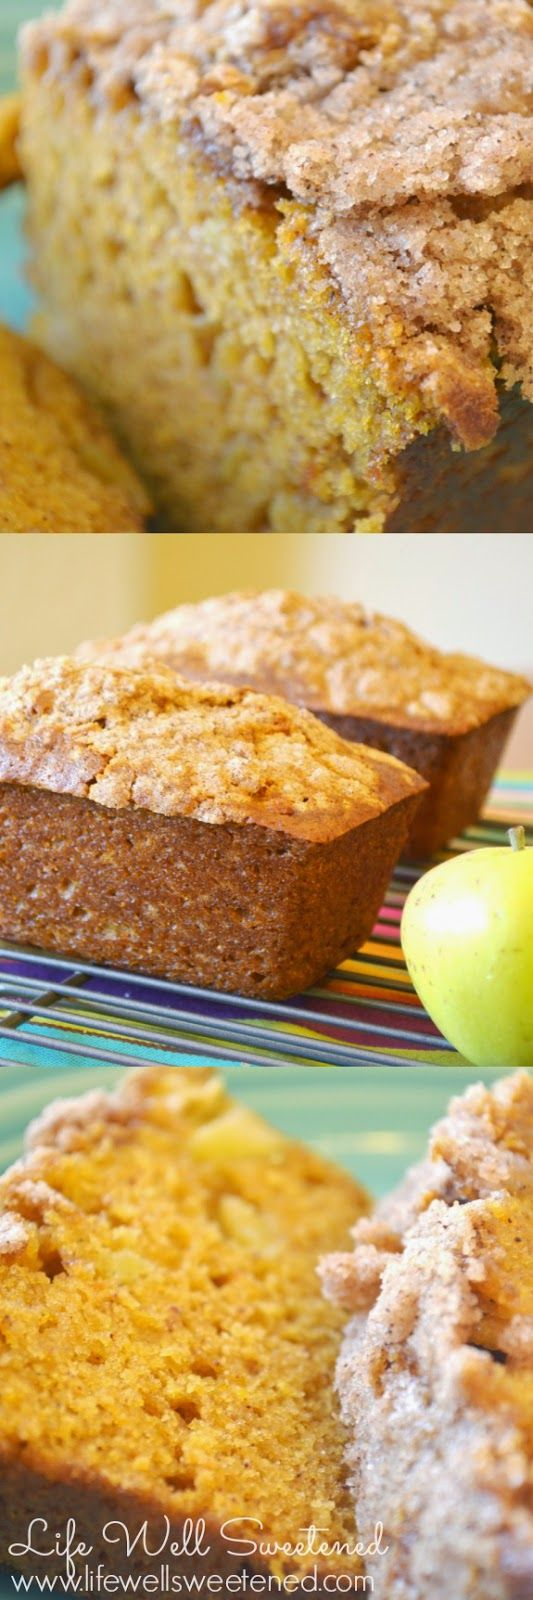 Amazing Pumpkin Apple Bread. Oh my goodness.. me and my family go CRAZY over this deliciously moist bread. Perfect for the holidays!